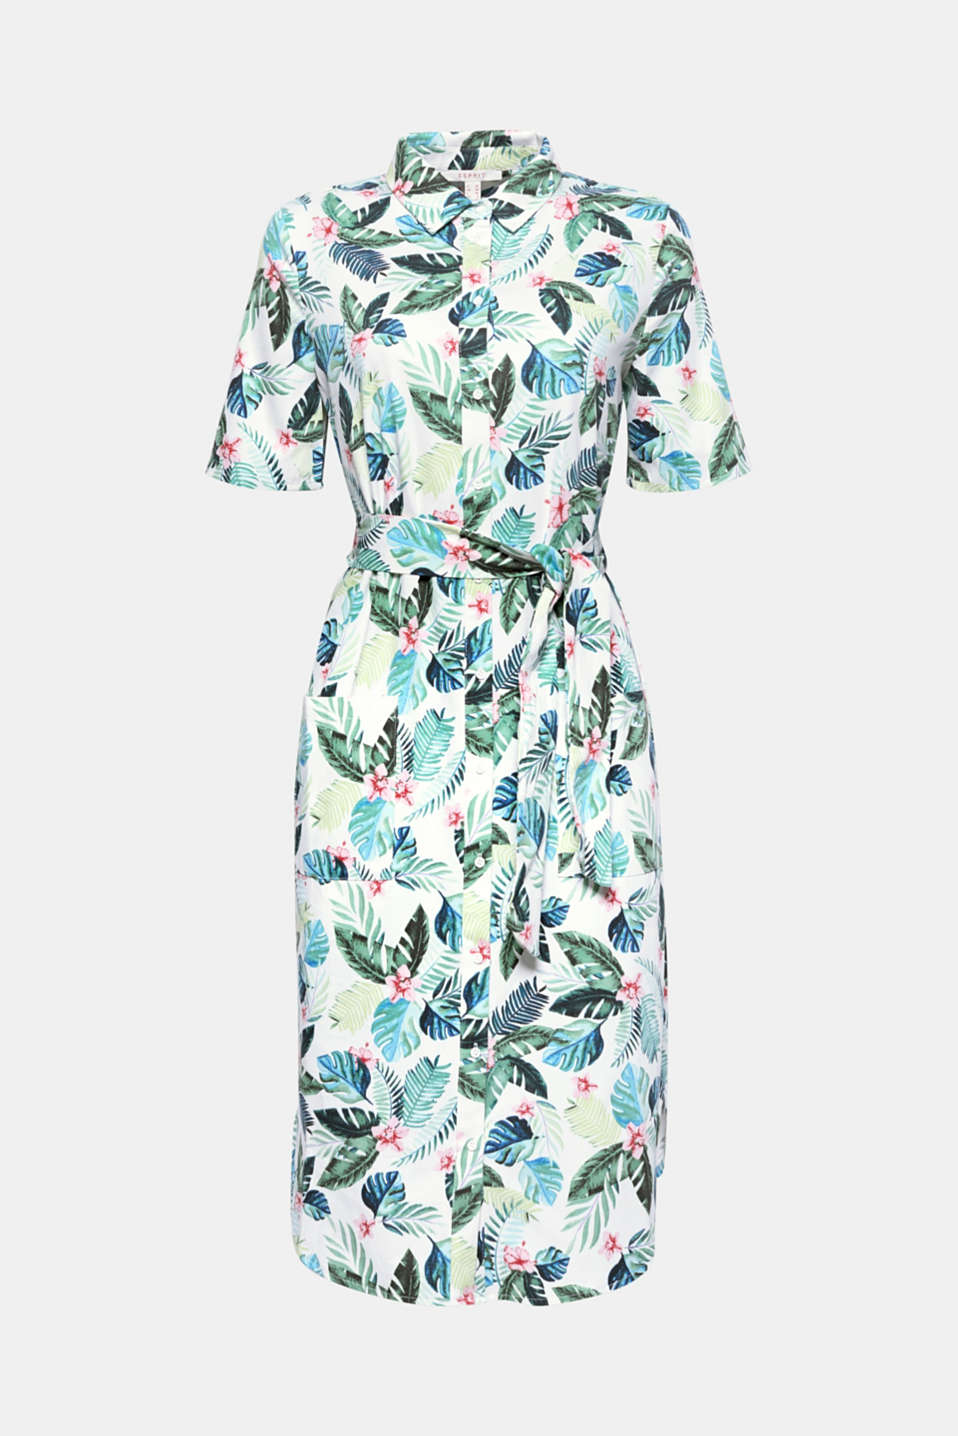 Palm tree prints have now got the power: like on this stylish shirt blouse dress in comfortable stretch cotton!